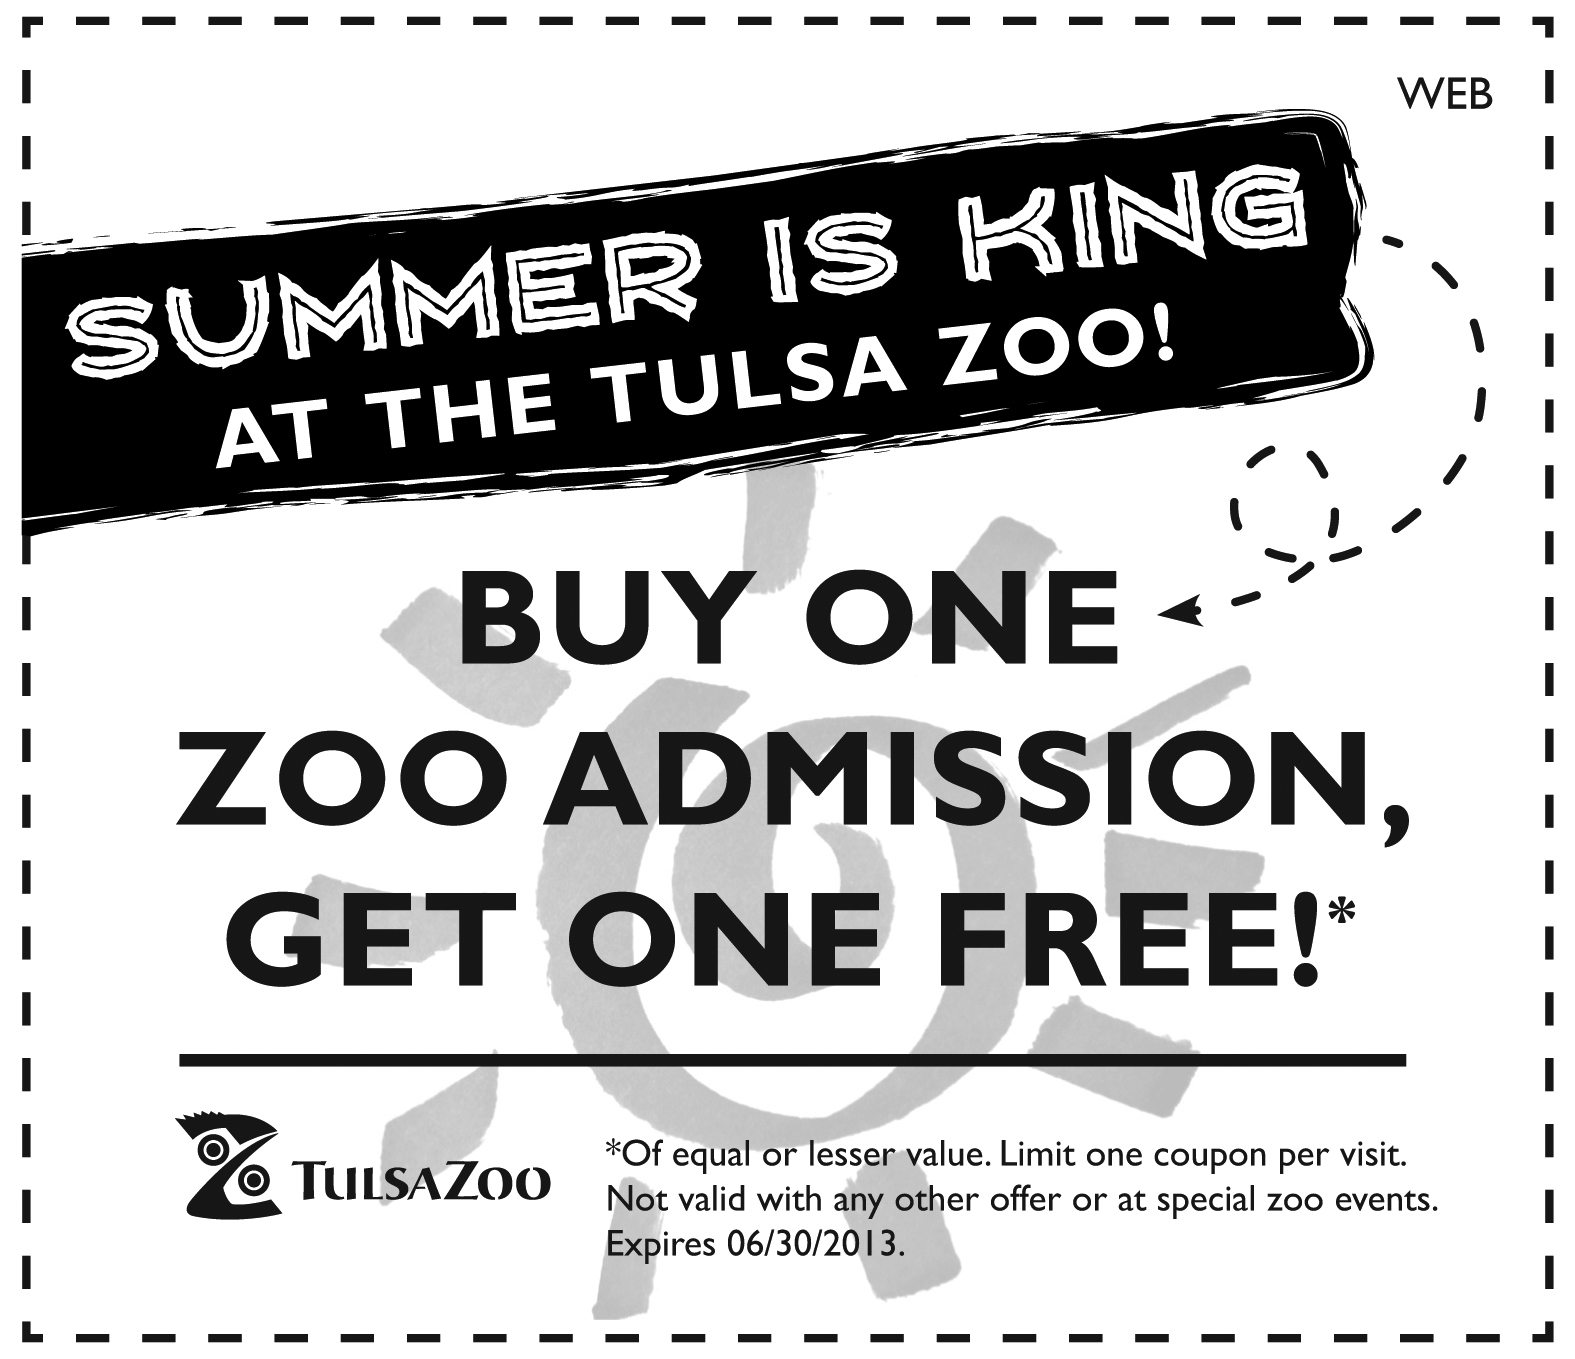 How Much is Zoo Admission with Lone Star?